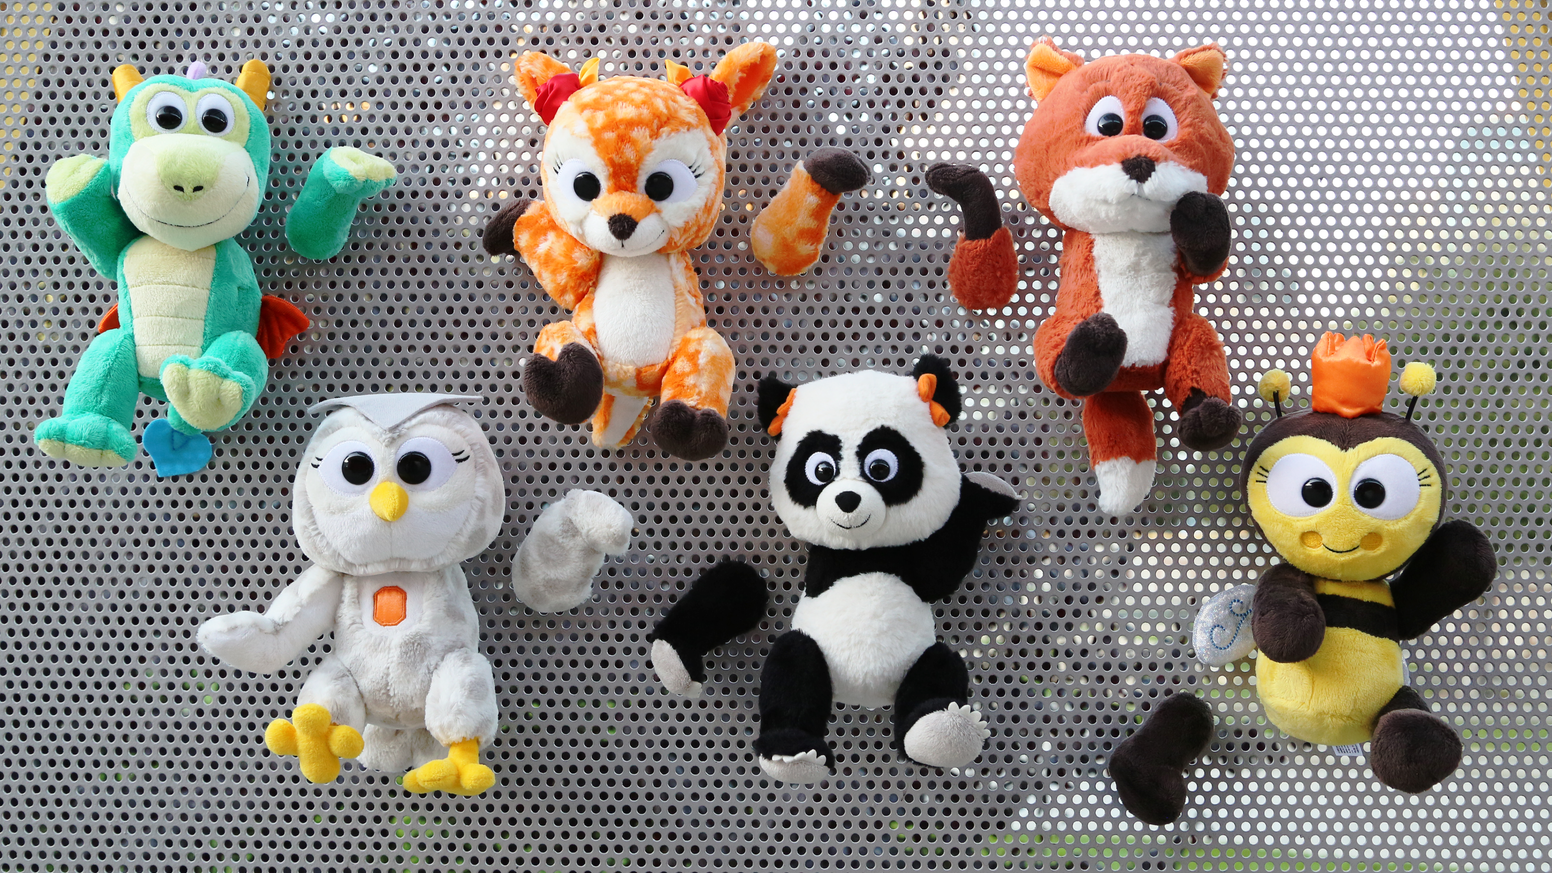 Make thousands of magnetic plush combos with 6 new Storytale Forest Animoodles. Created by former artists from Apple, Disney and Pixar.